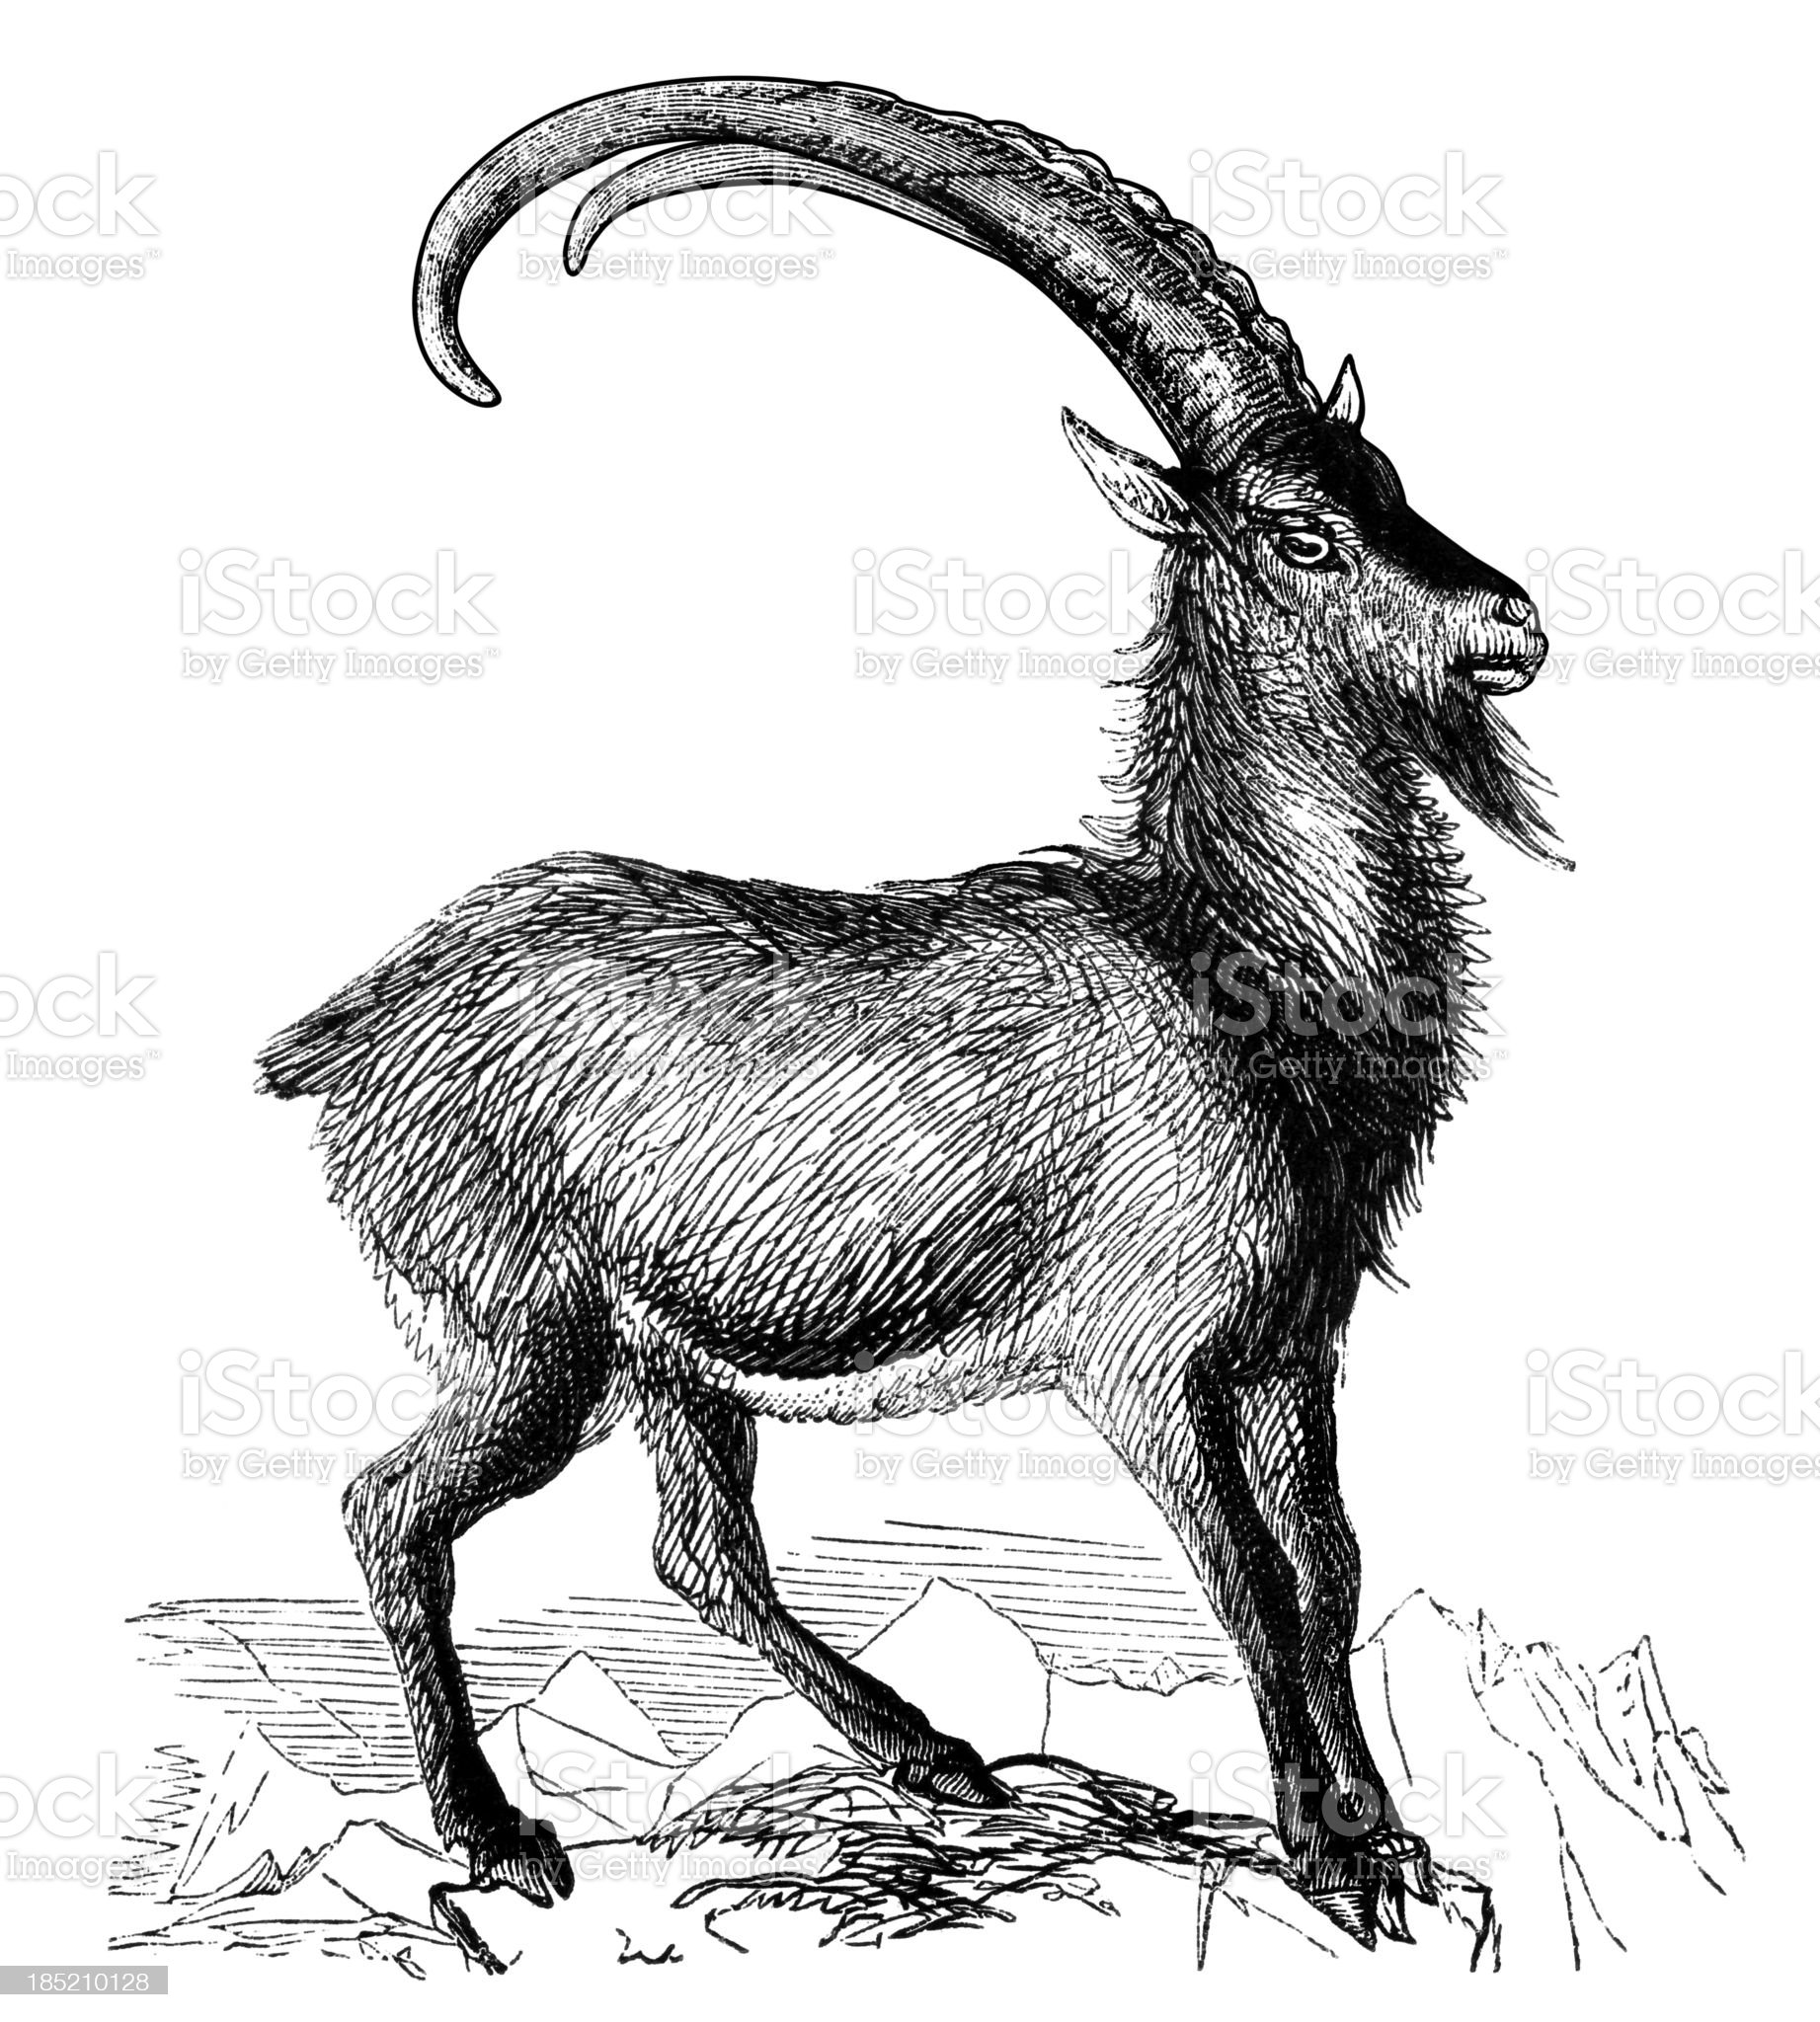 Wild goat royalty-free stock vector art